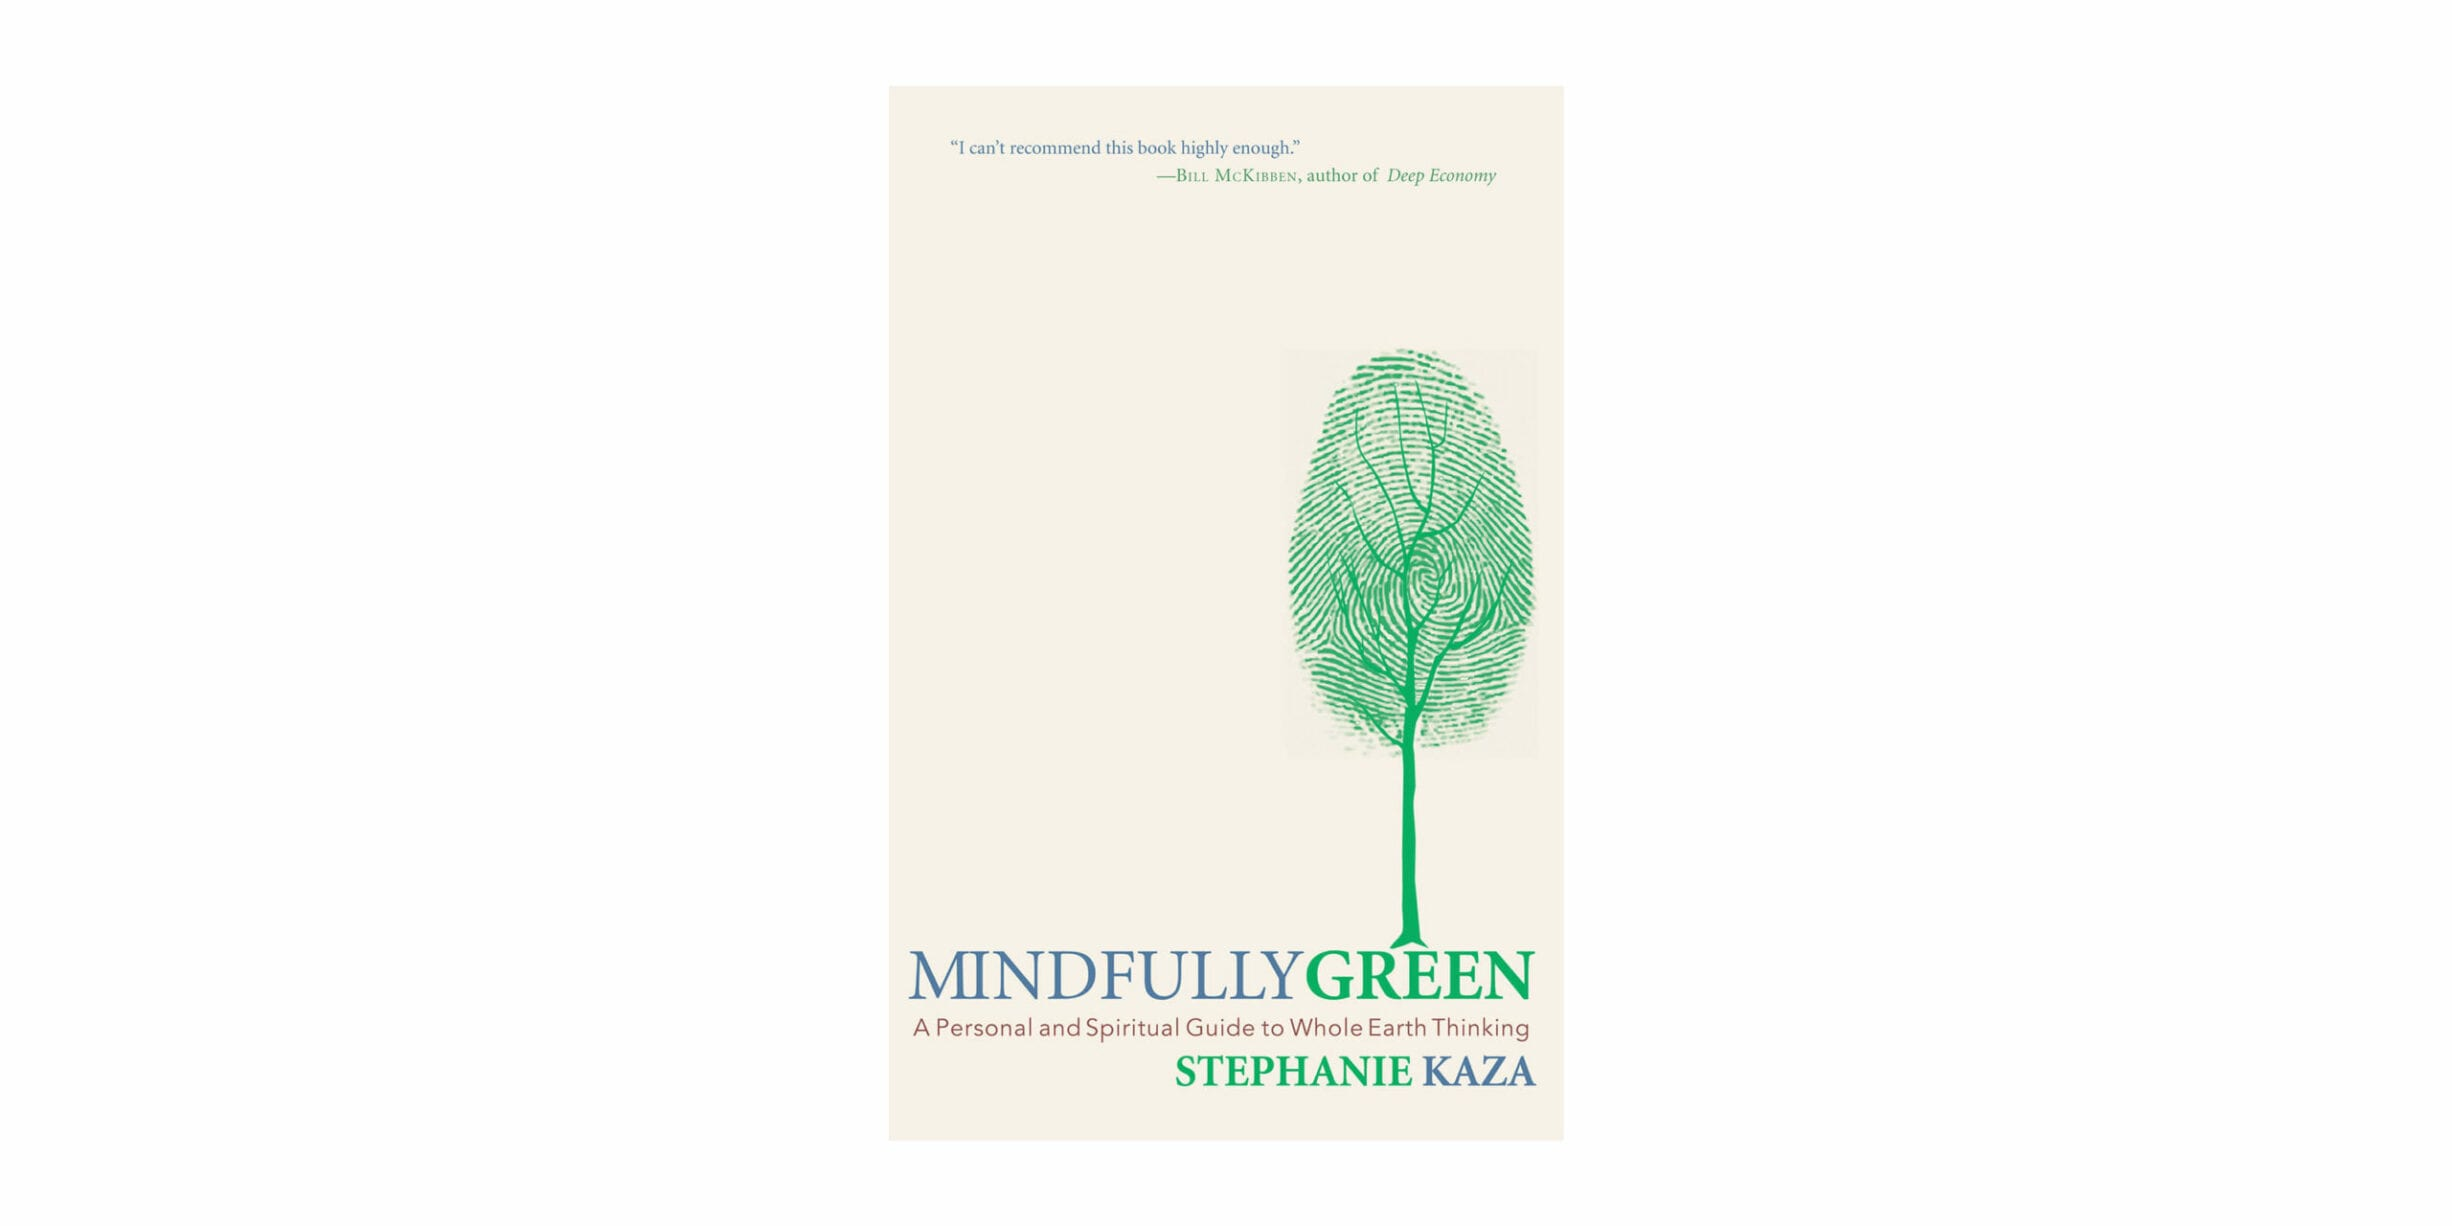 mindfully green book cover